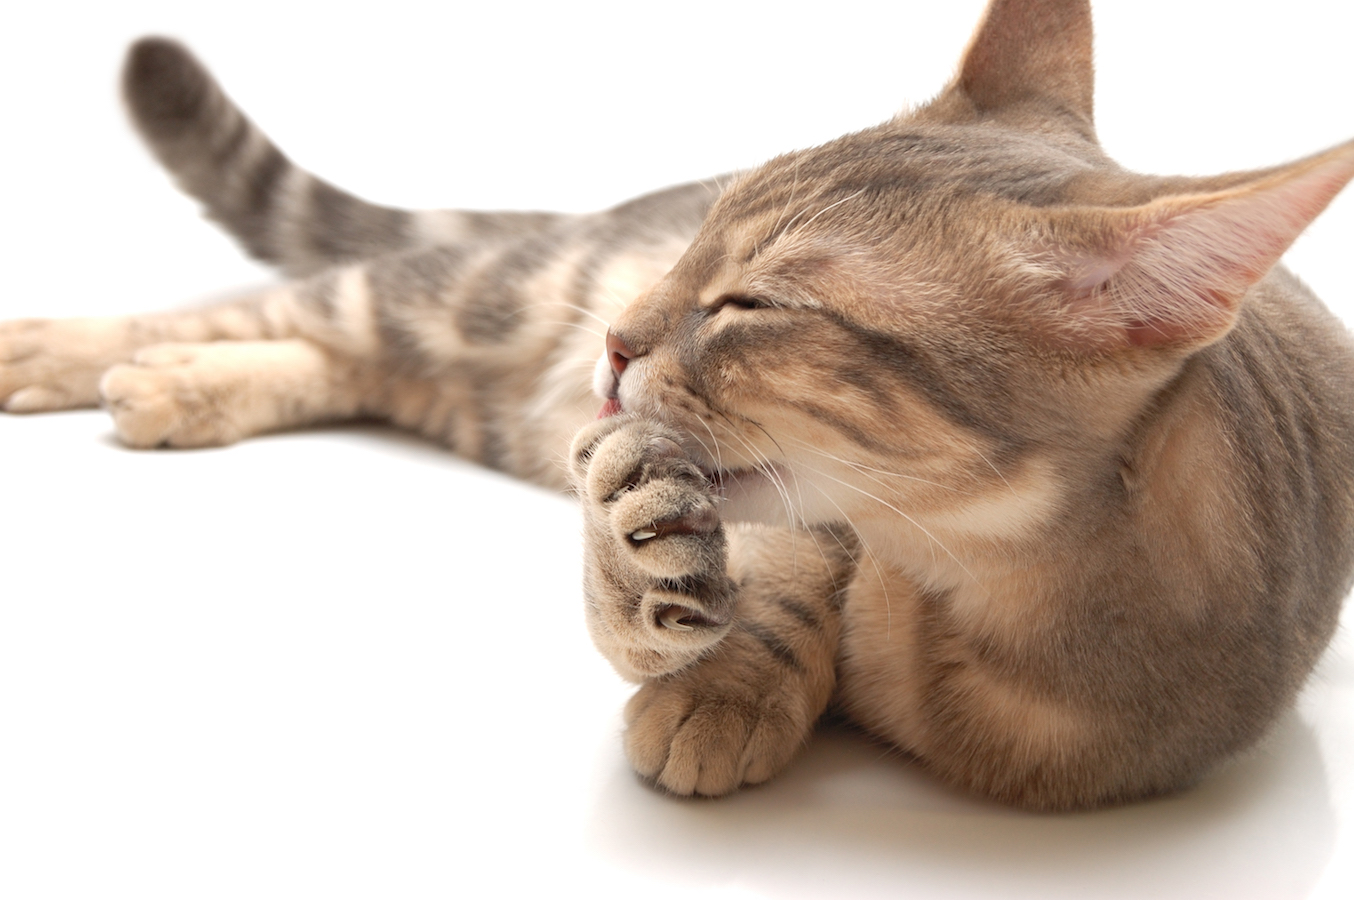 Striped cat lying on white table and licking own paw